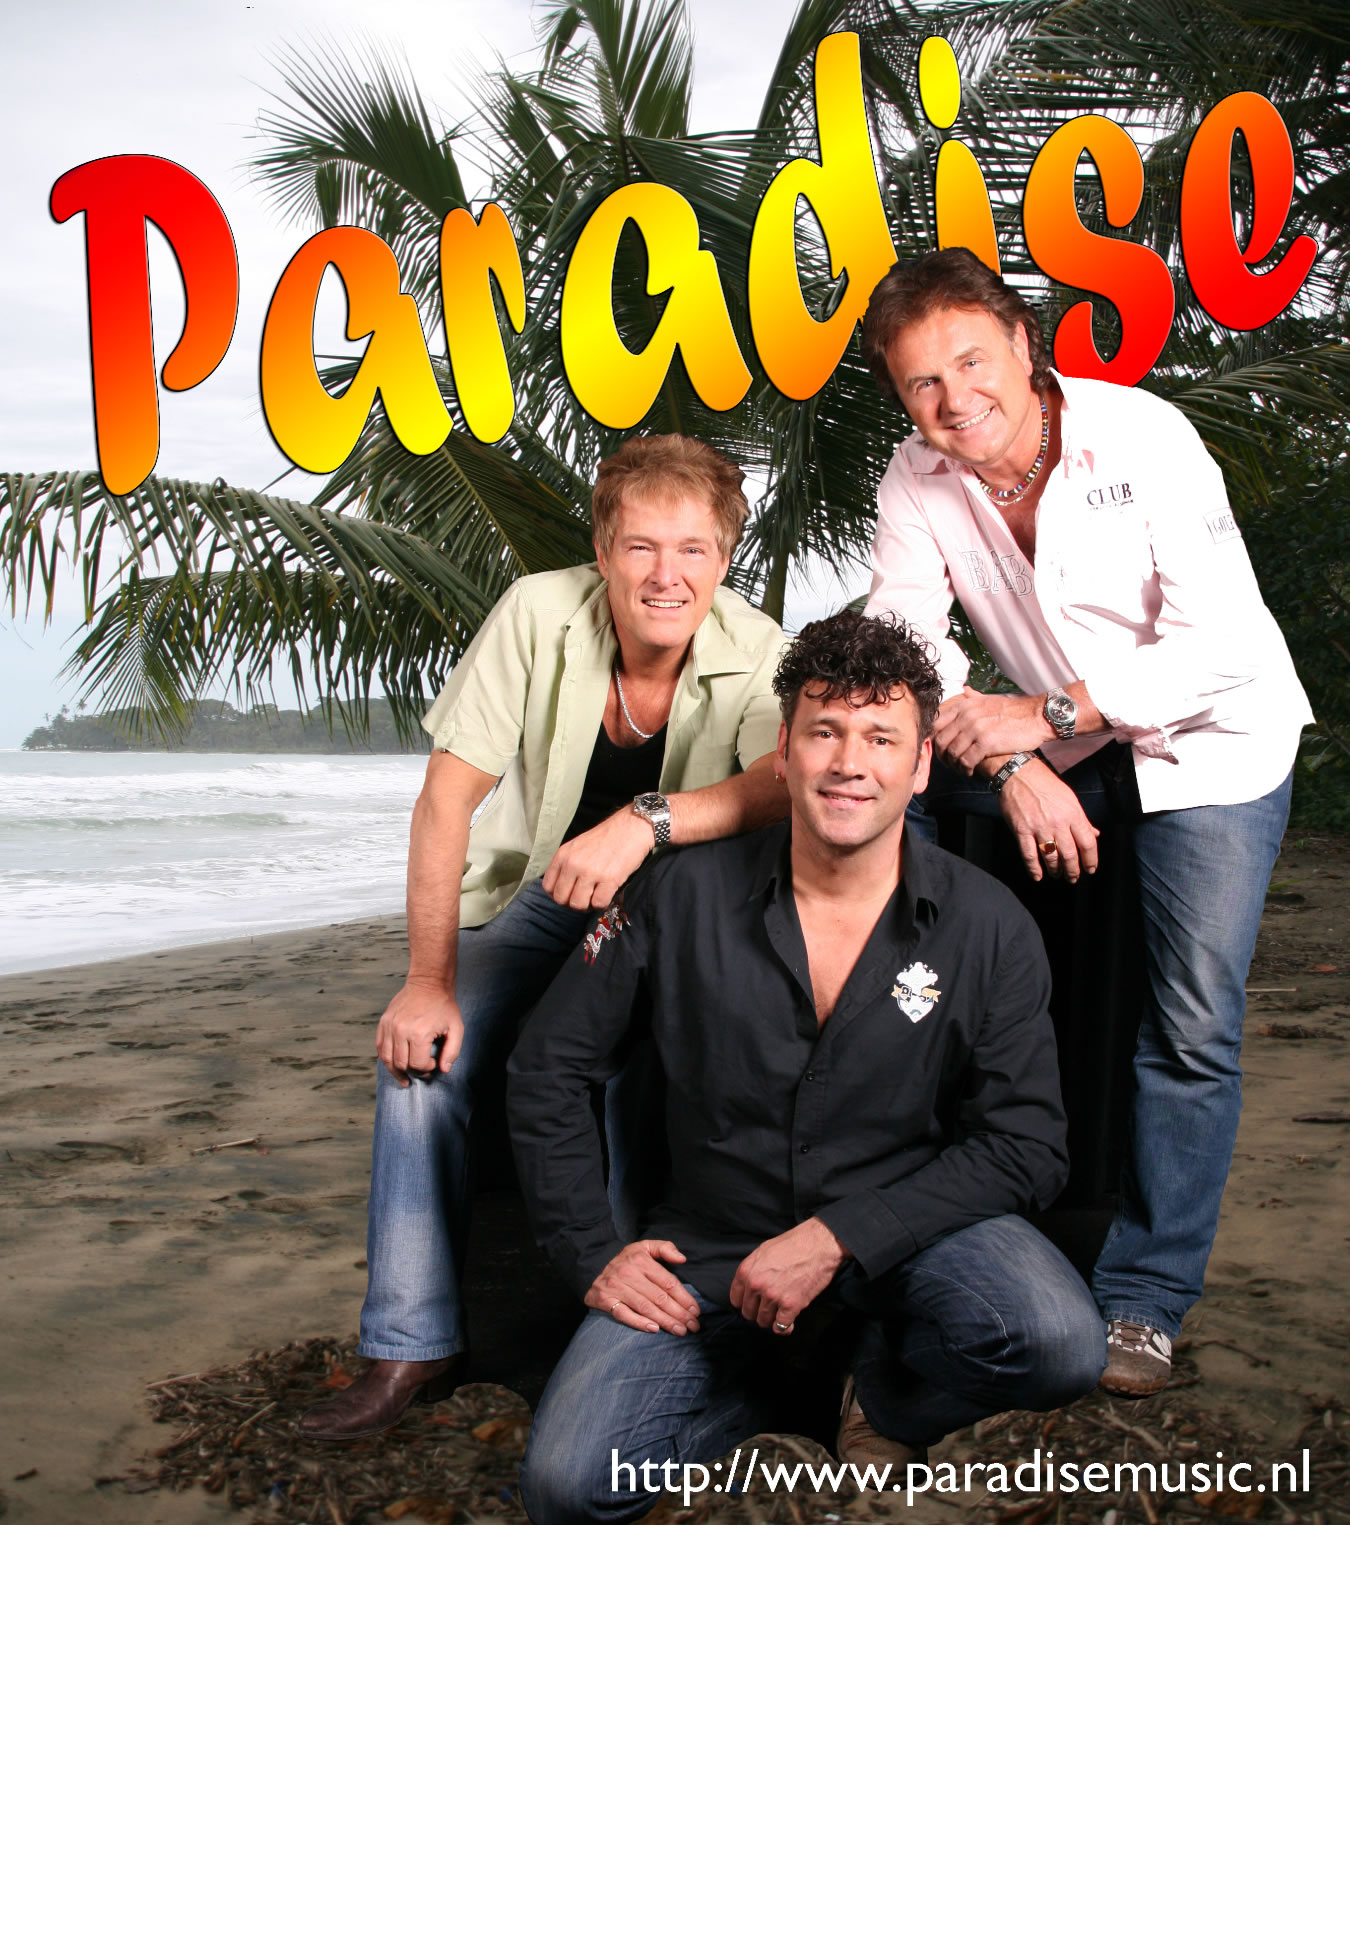 Paradise - Keeps The Music Alive